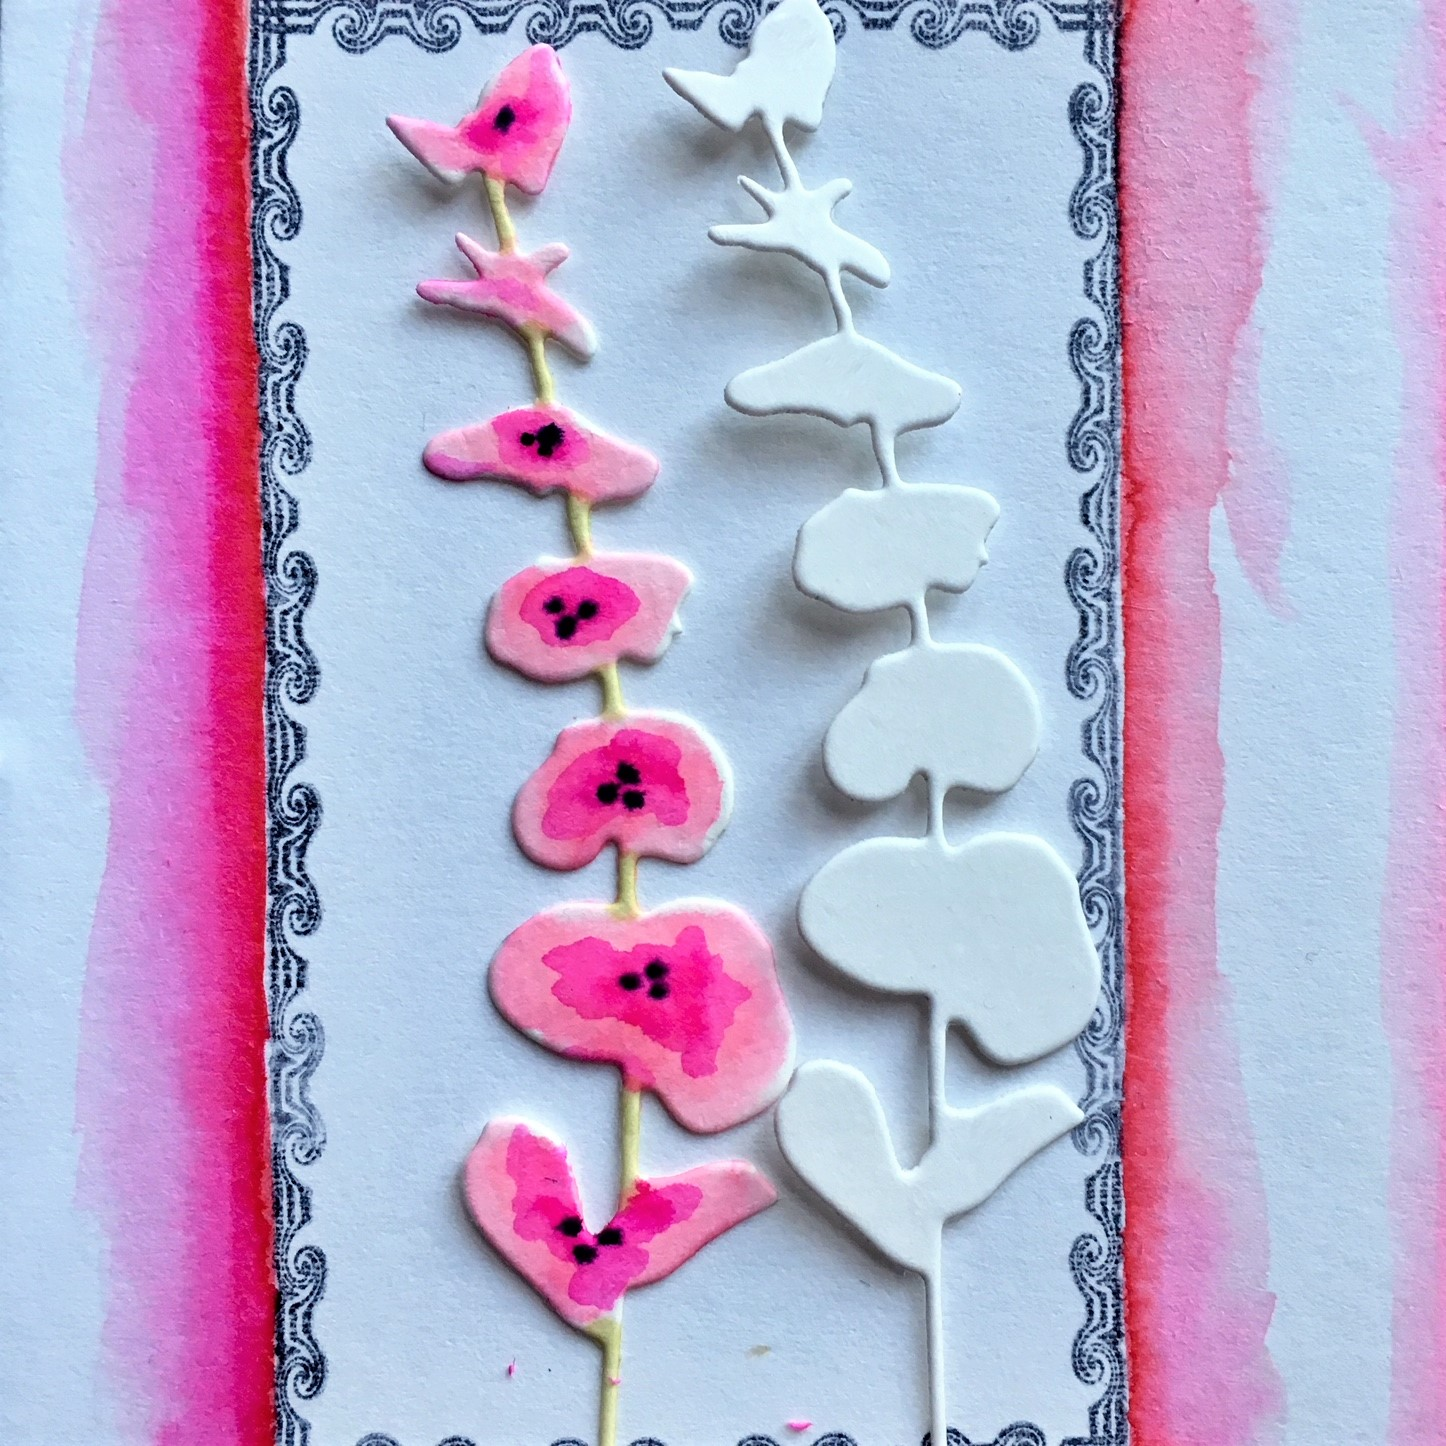 before and after colouring DIY paper embellishments